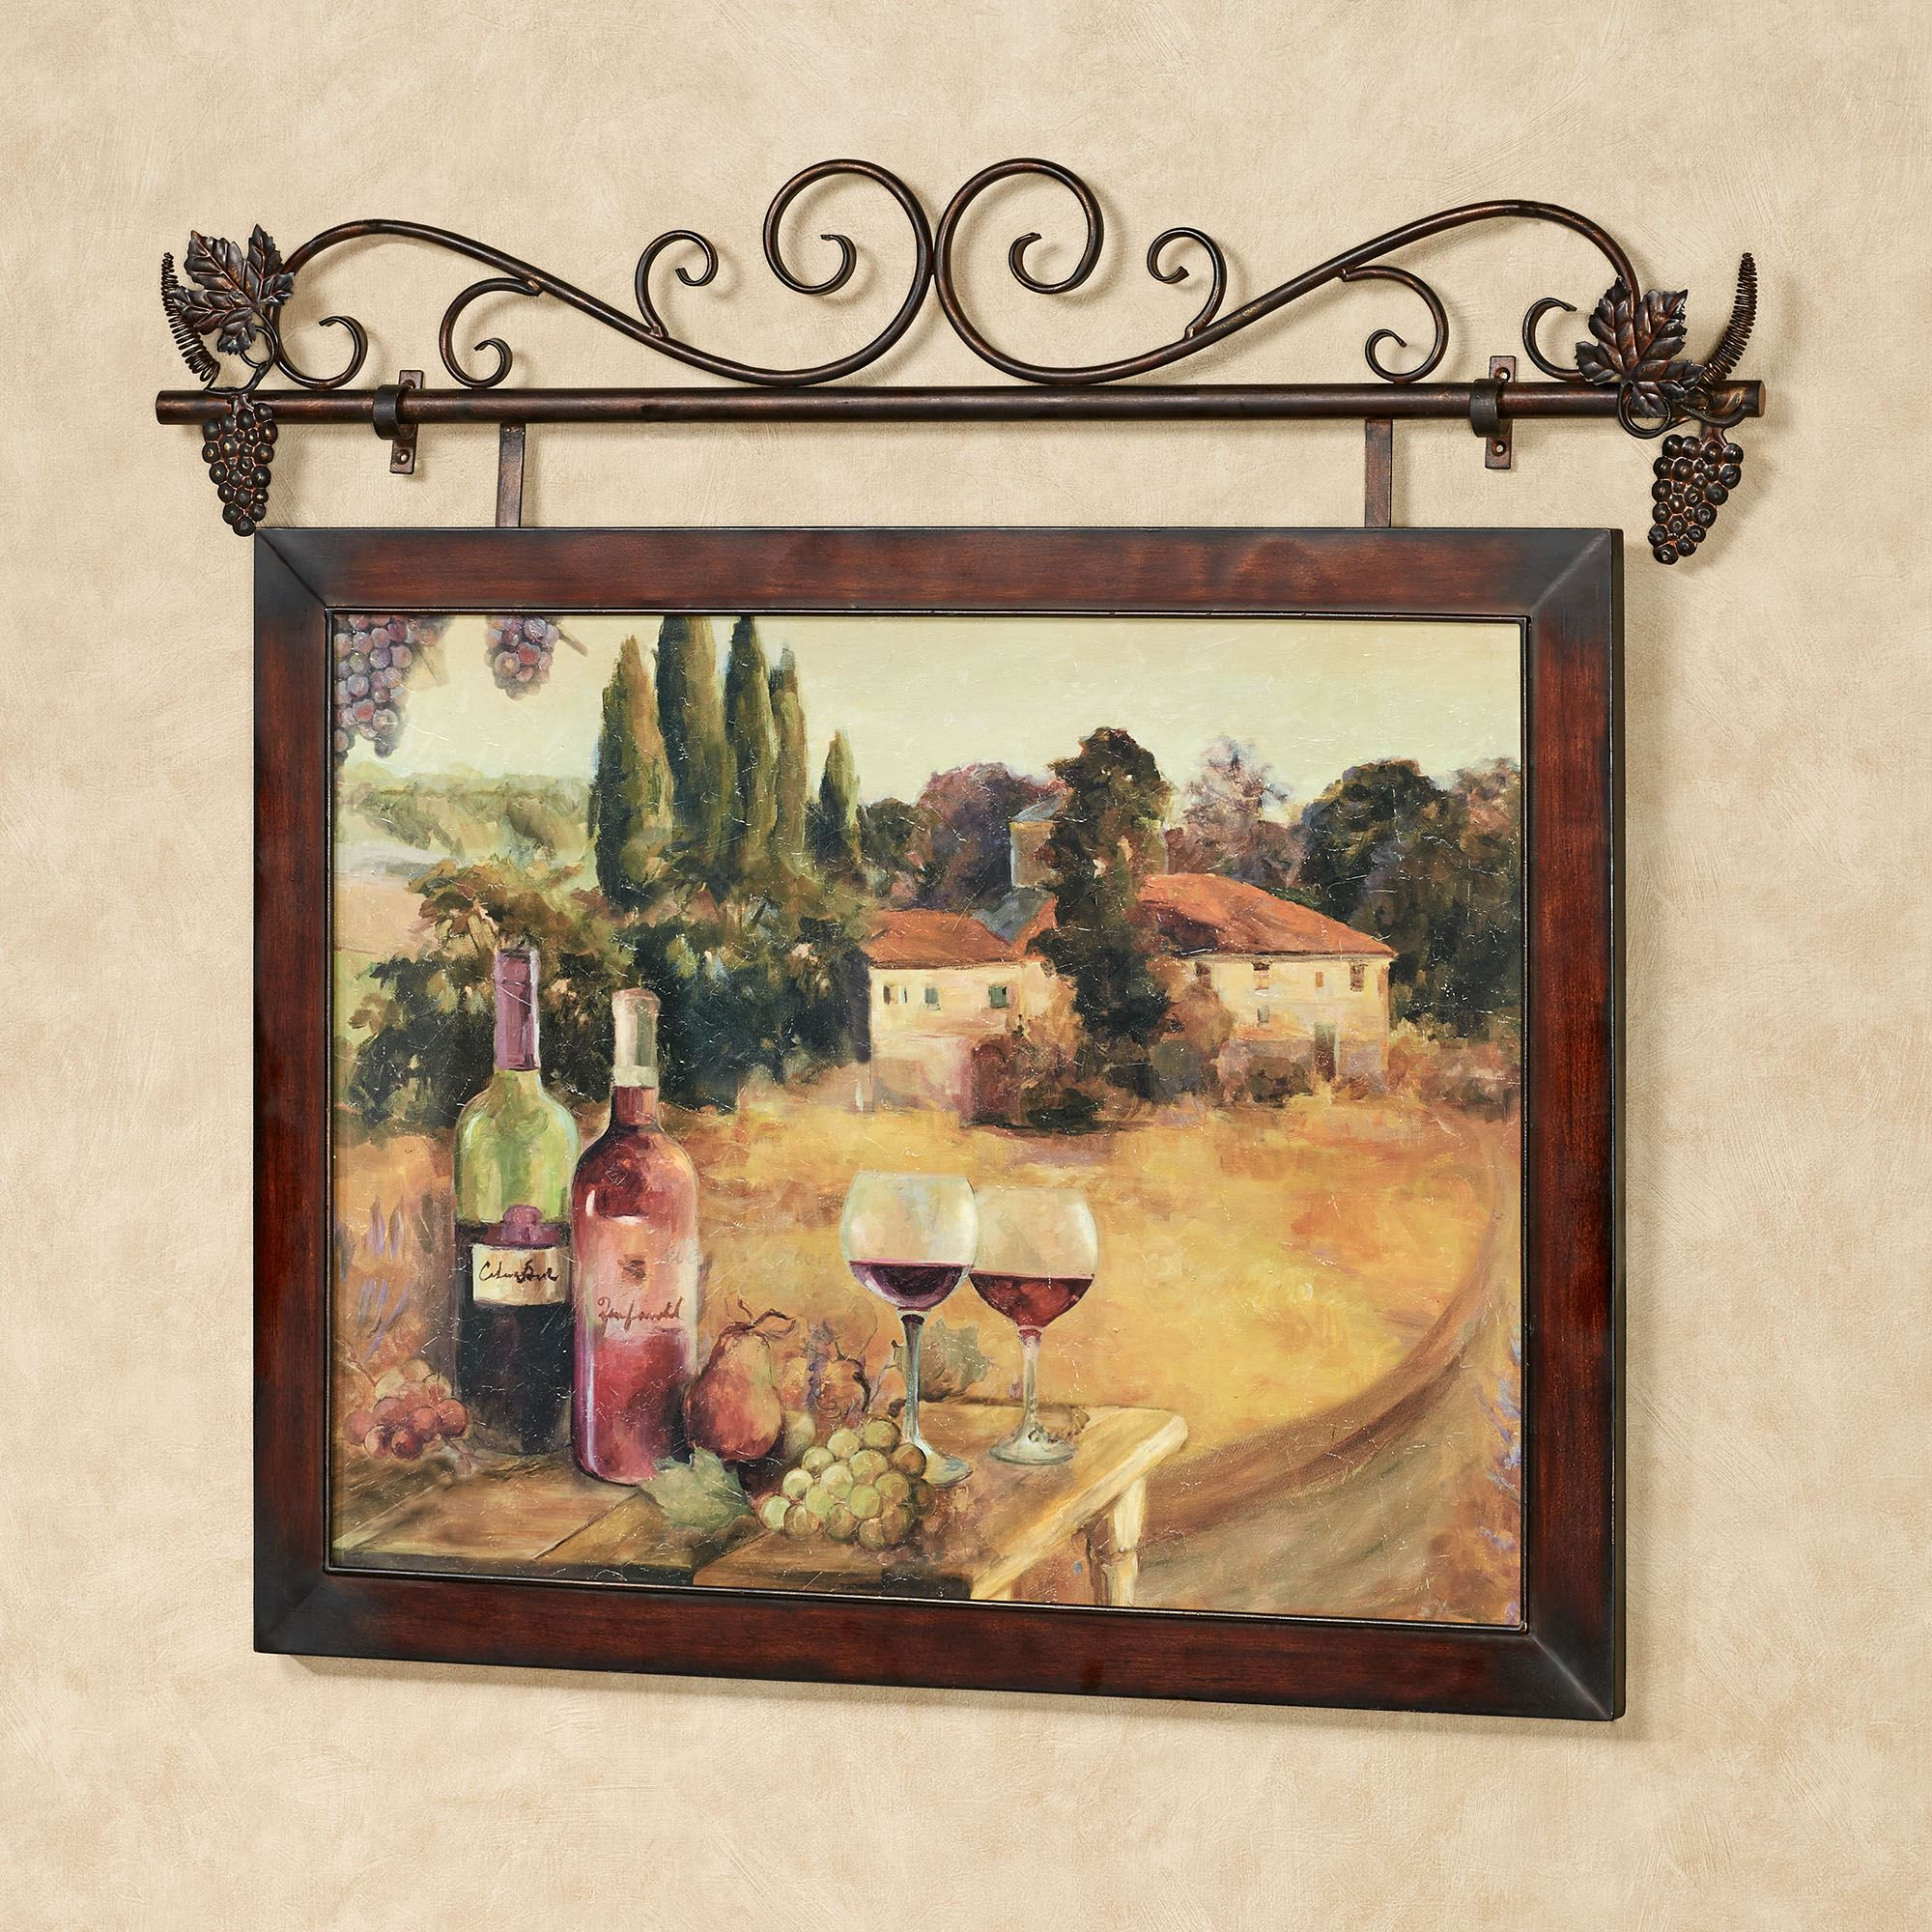 Spoleto Afternoon Italian Scene Wall Art With Metal Hanger